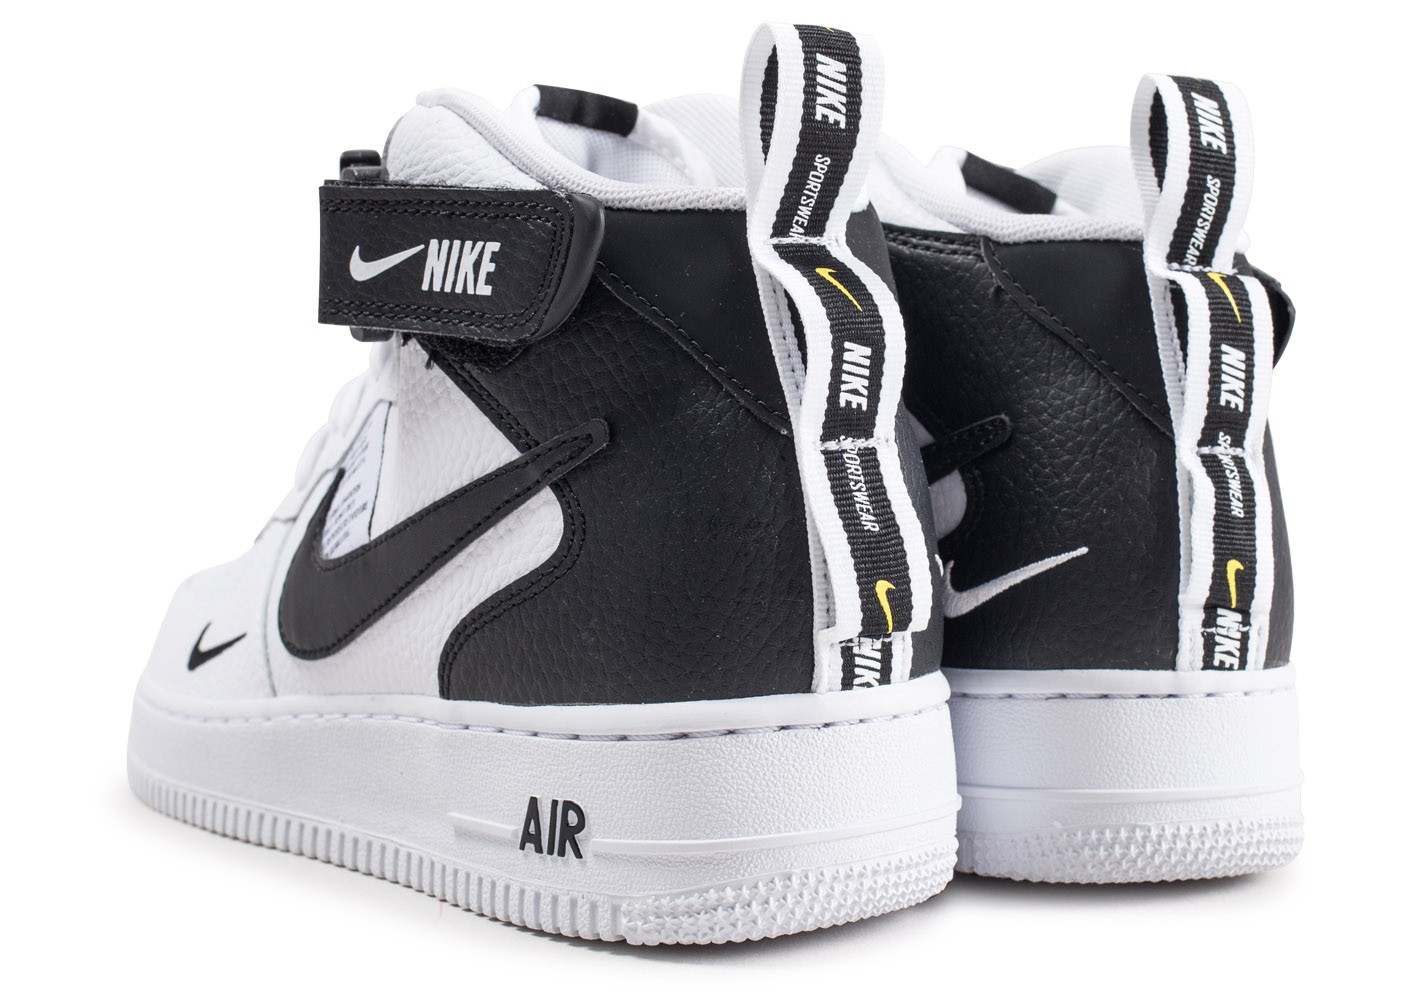 free shipping 2f3e2 8f564 ... Chaussures Nike Air Force 1 Mid 07 LV8 Utility blanche et noire vue  dessous ...